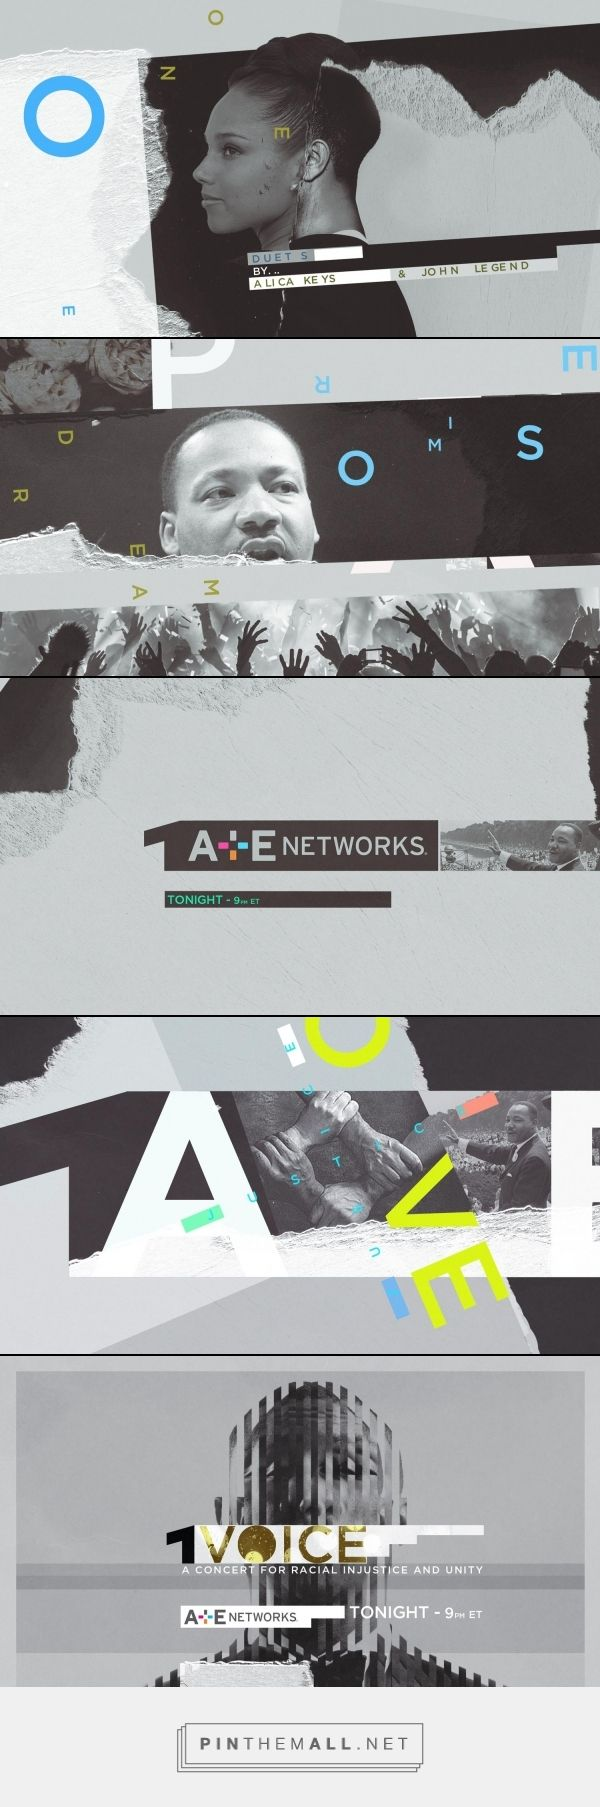 "A&E Networks ""One Voice"" - created via https://pinthemall.net"